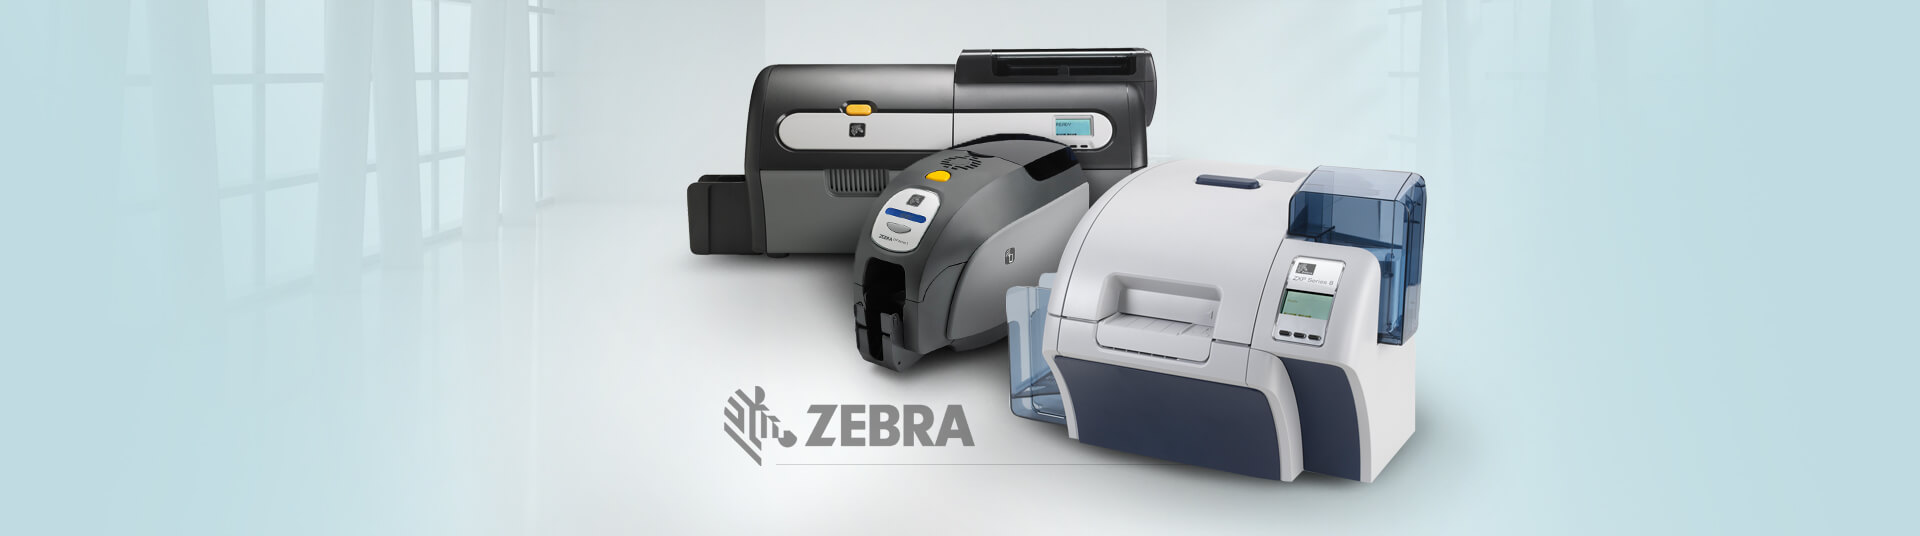 Zebra Photo ID Printer